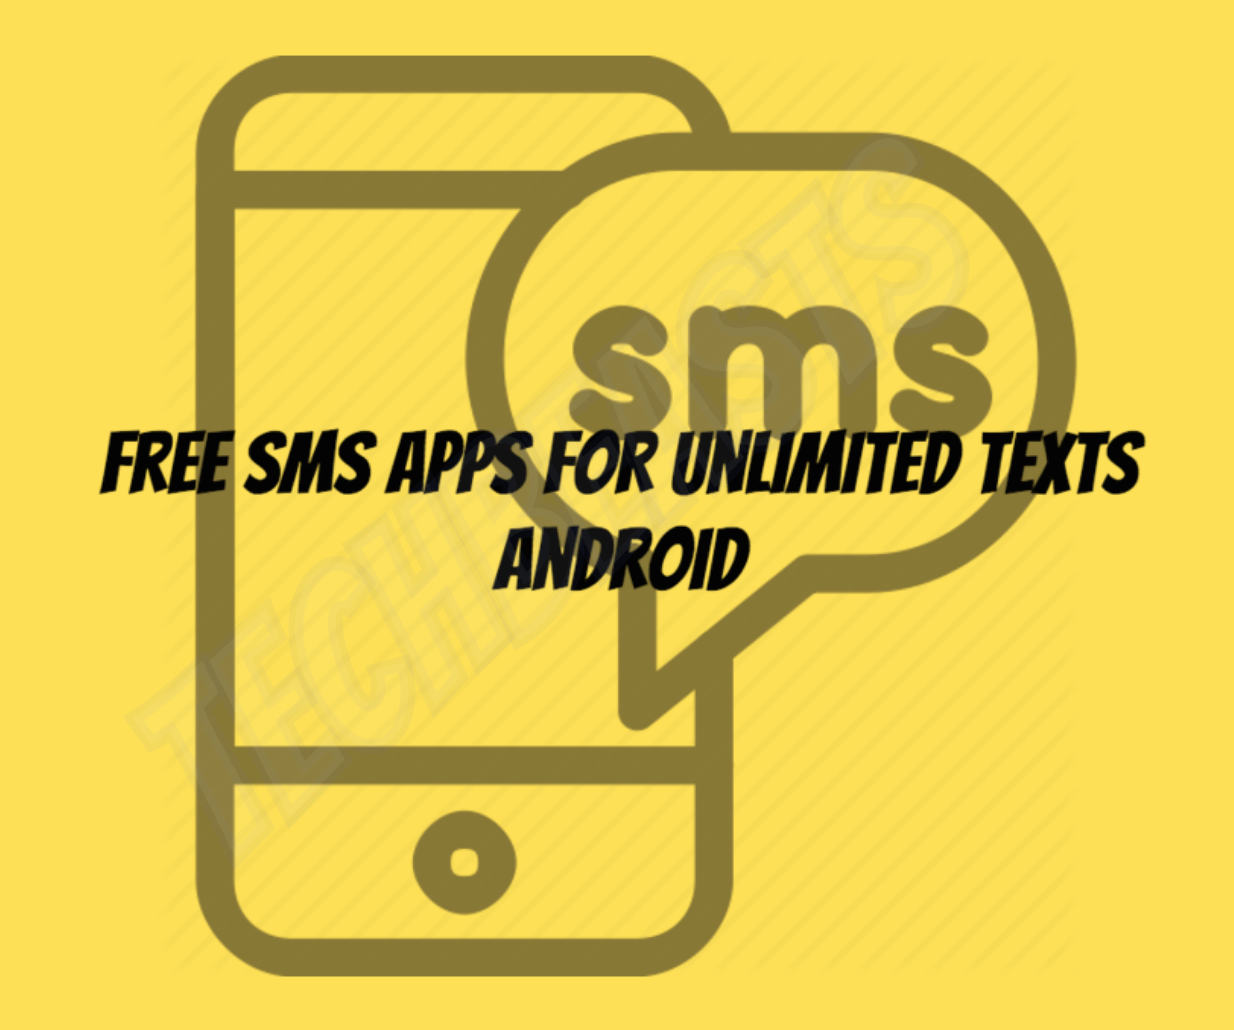 Free SMS Apps for Unlimited Texts